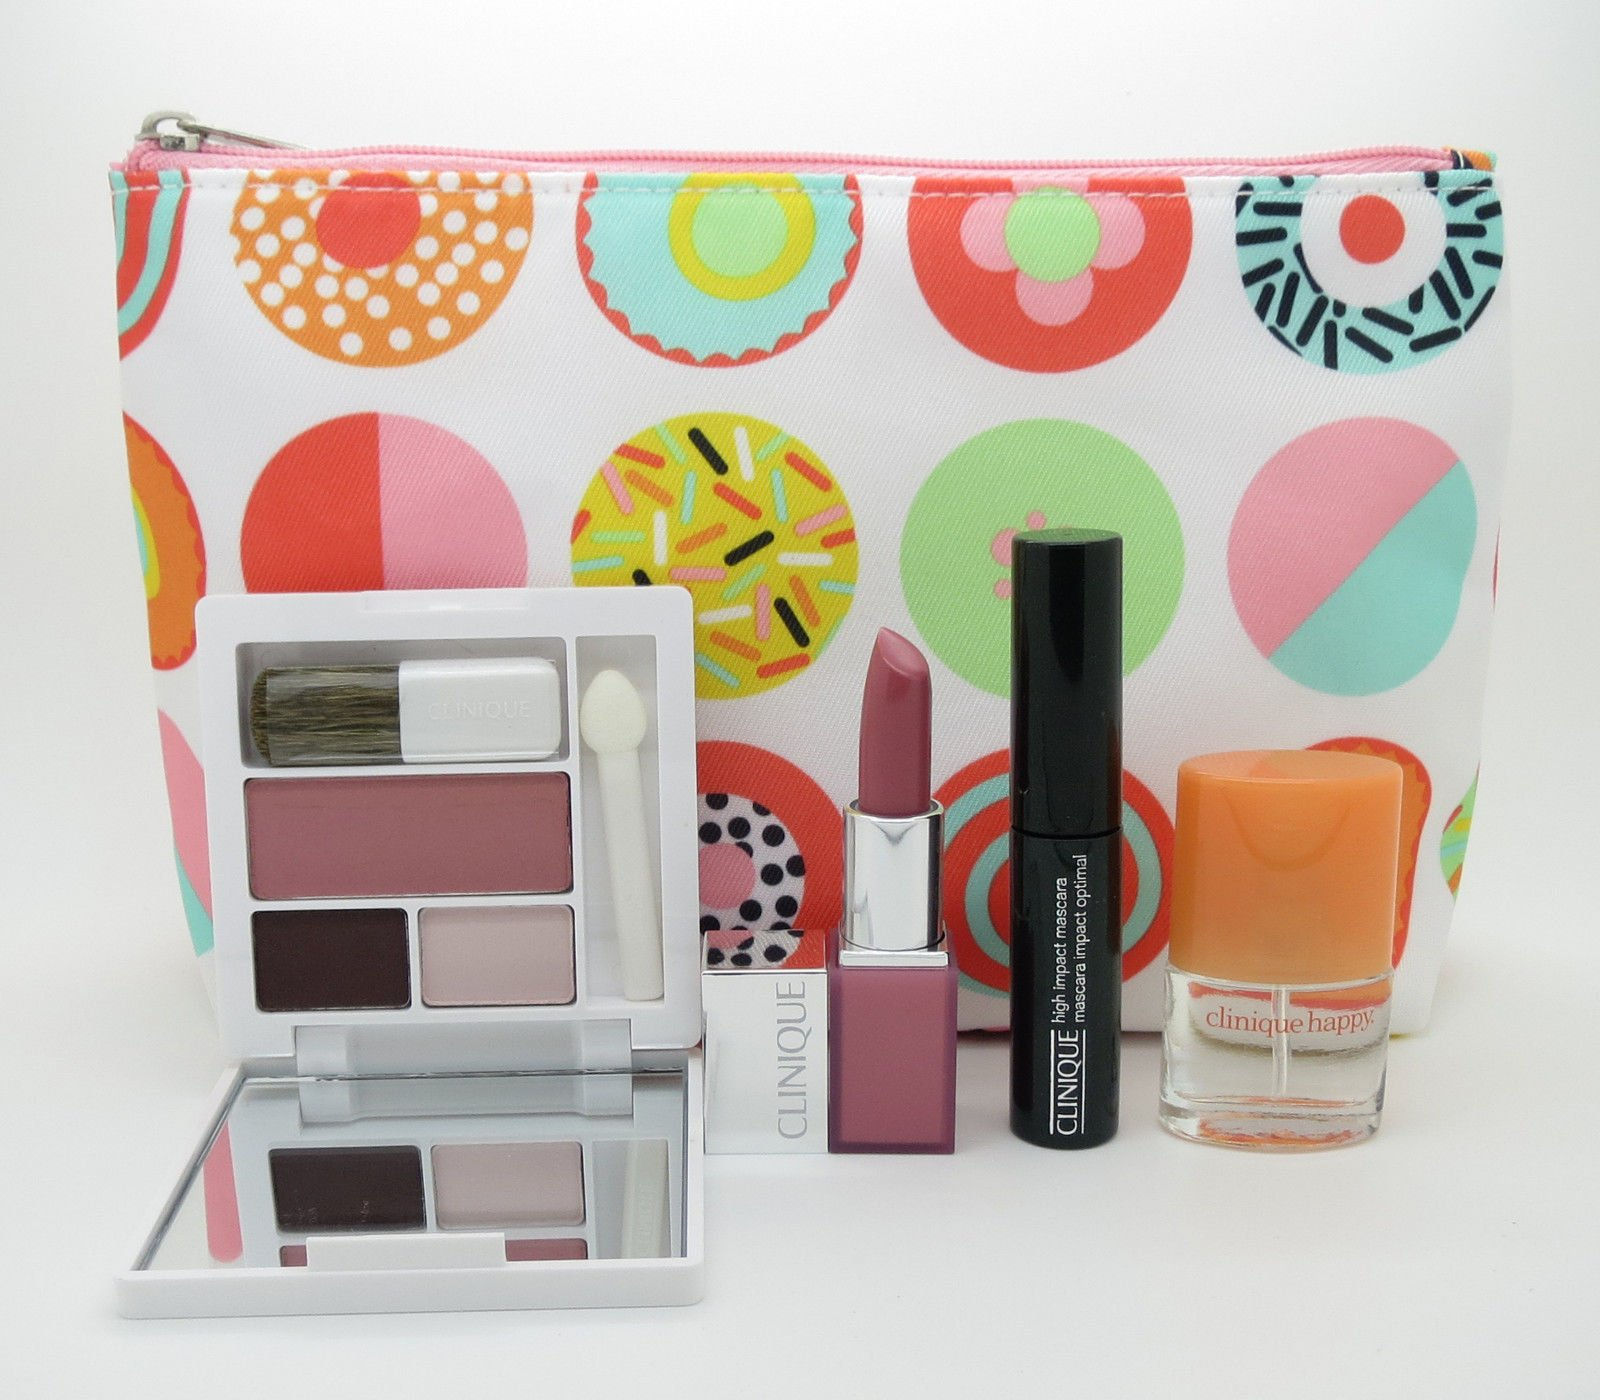 Clinique Makeup Set Macy S - Mugeek Vidalondon